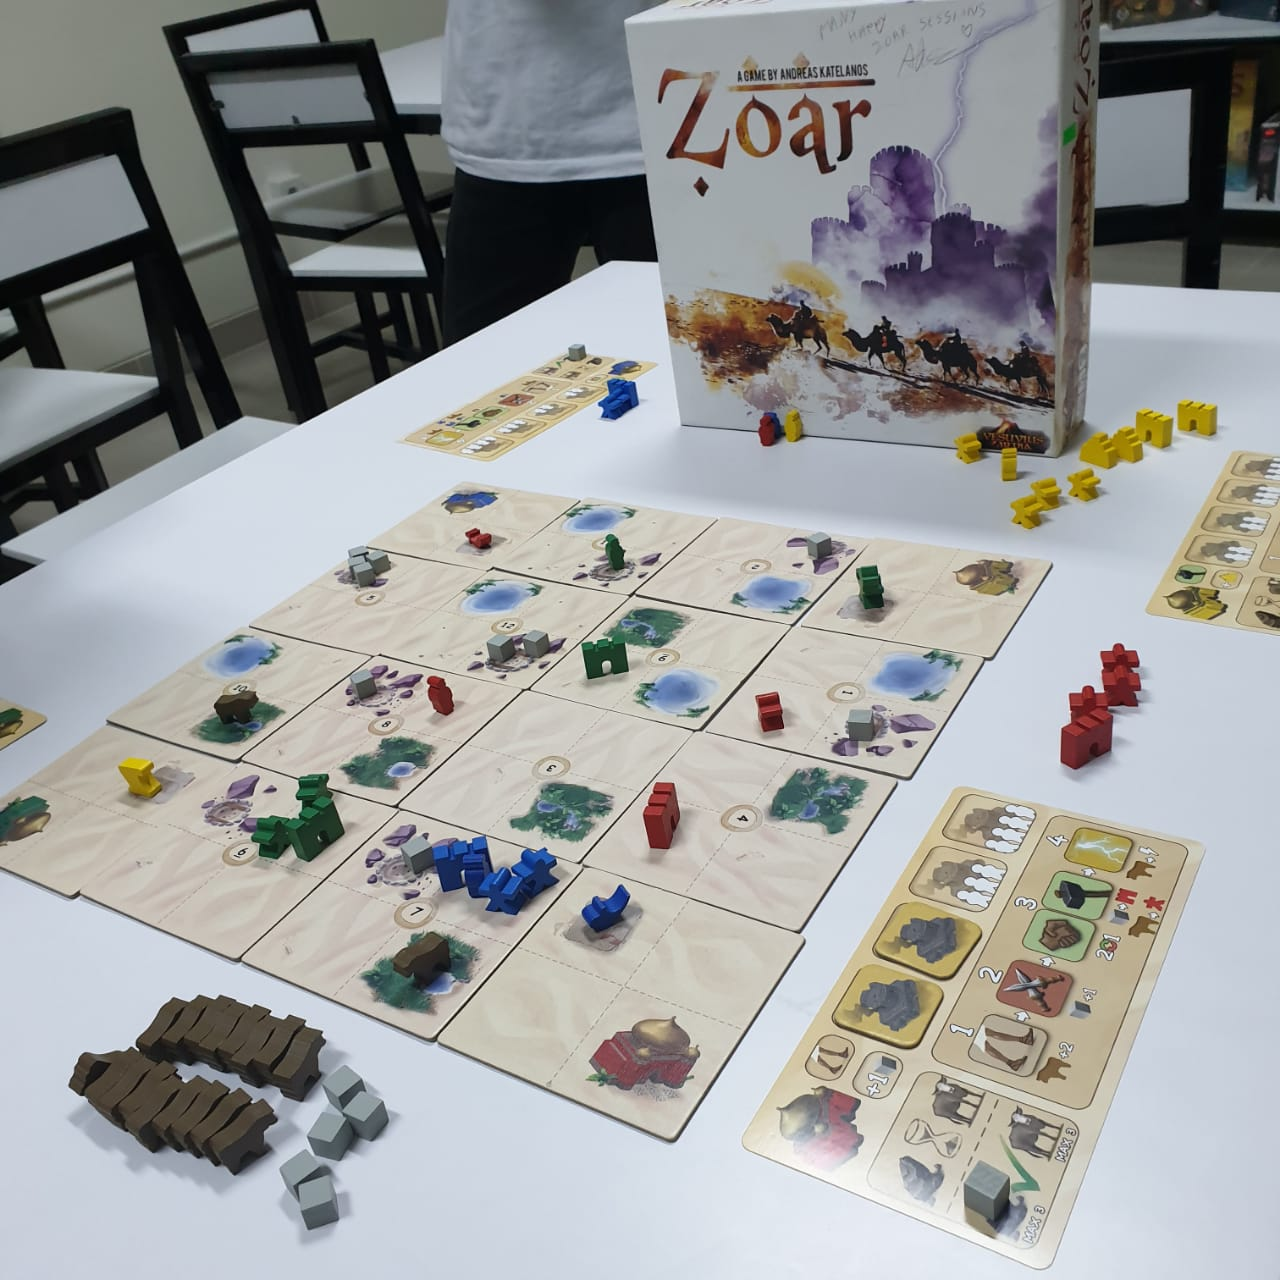 Zoar: Bring the ancient glory or eradicate enemies' cities [Review]